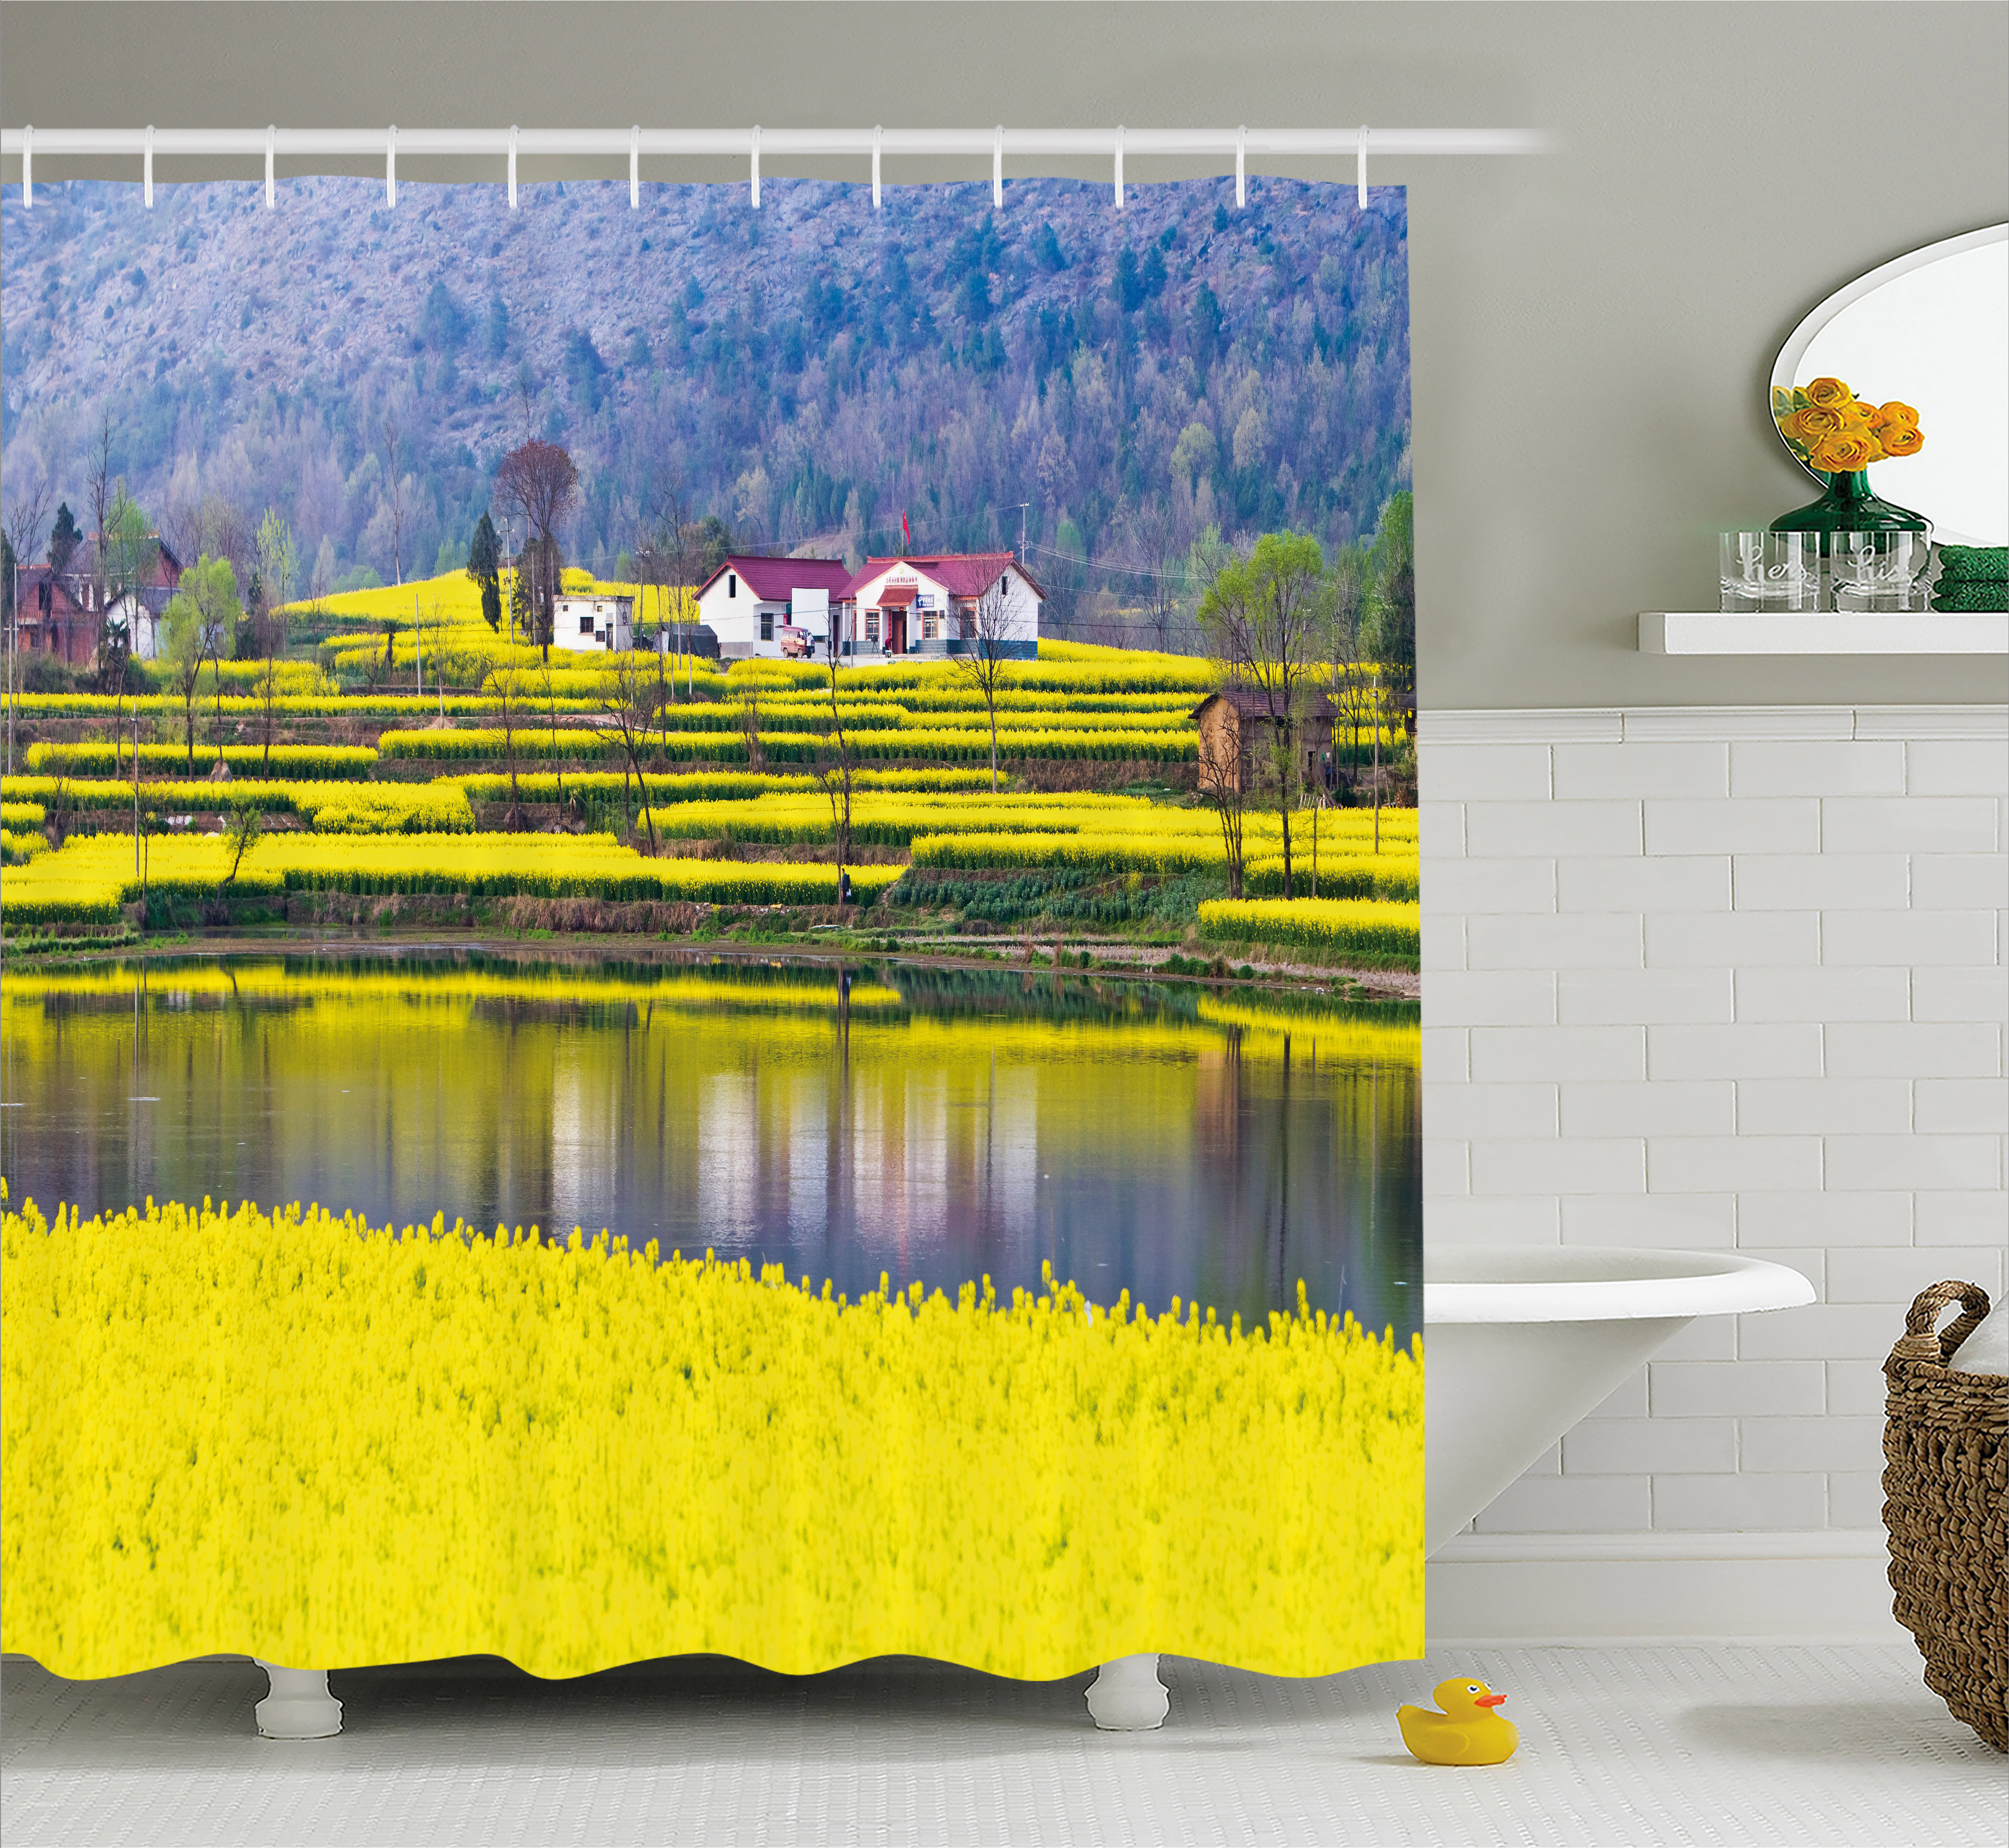 Yellow Flower Shower Curtain, Rural Spring Scenery in Northern Shaanxi China Blossoming Farmland, Fabric Bathroom Set with Hooks, 69W X 75L Inches Long, Yellow Hunter Green, by Ambesonne